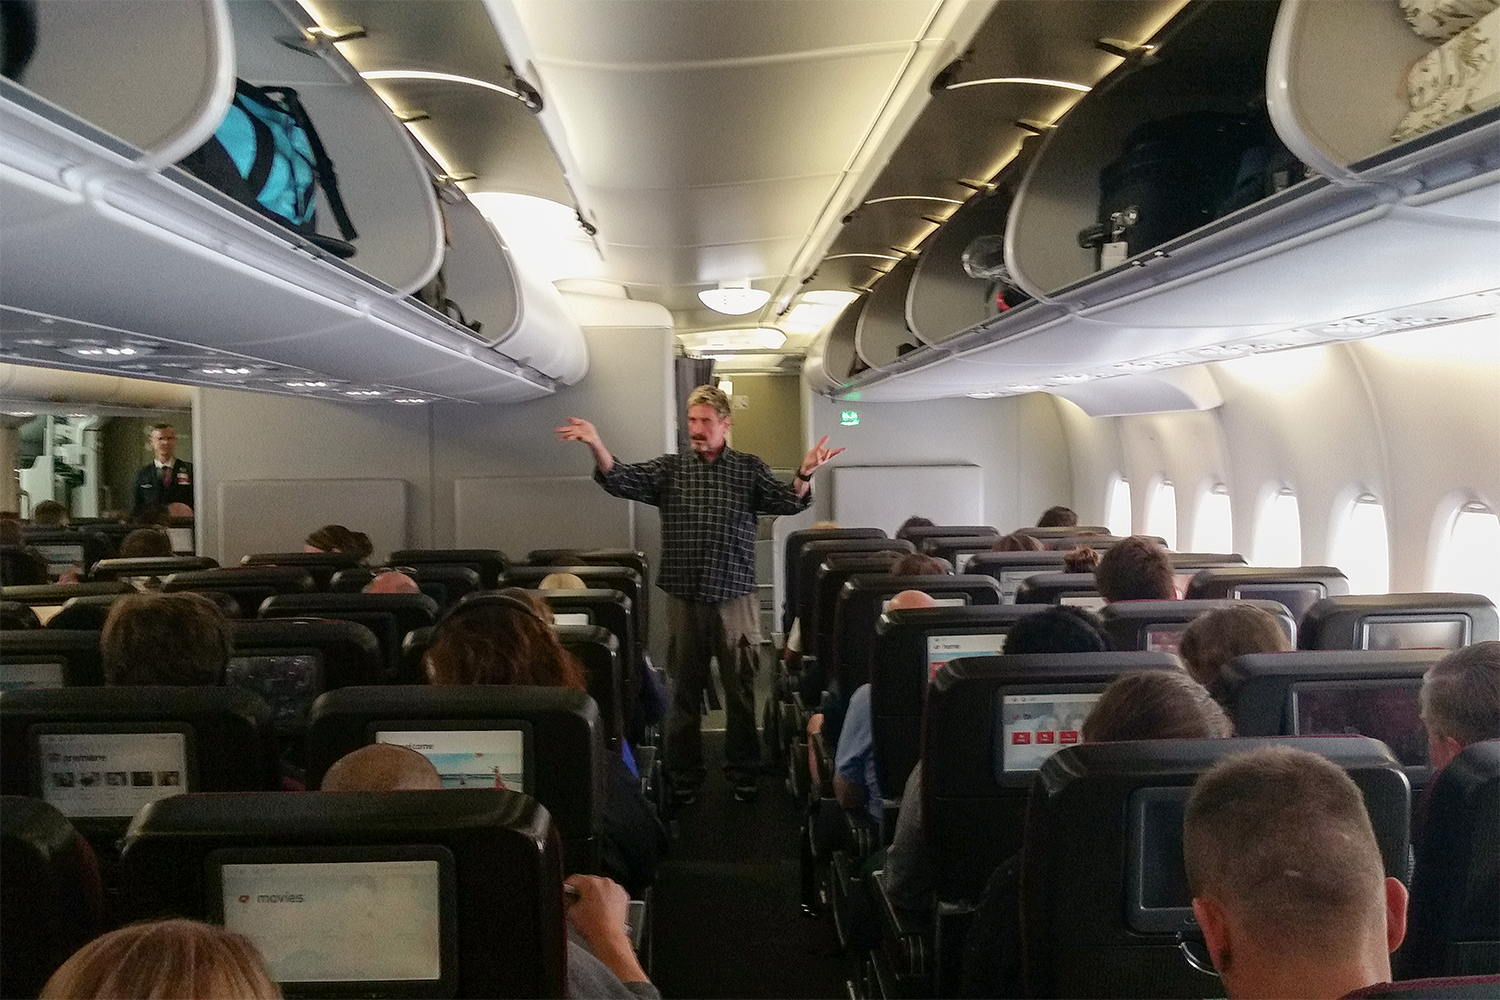 john mcafee airline hijacking hacker cyber security next